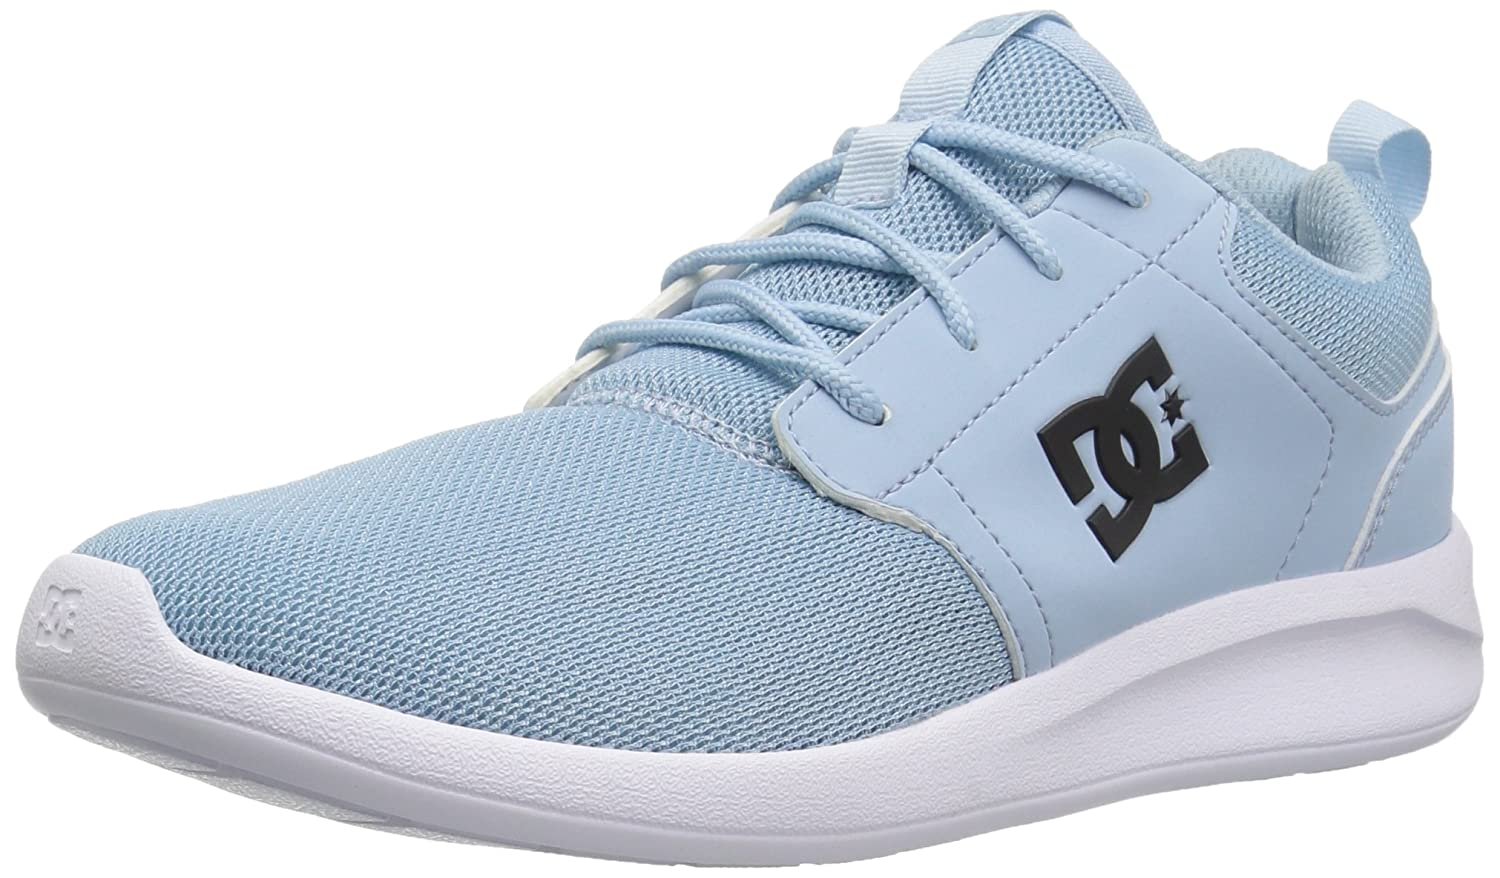 DC Women's Midway W Skate Shoe B01N6H61ZD 7.5 M US|Light Blue